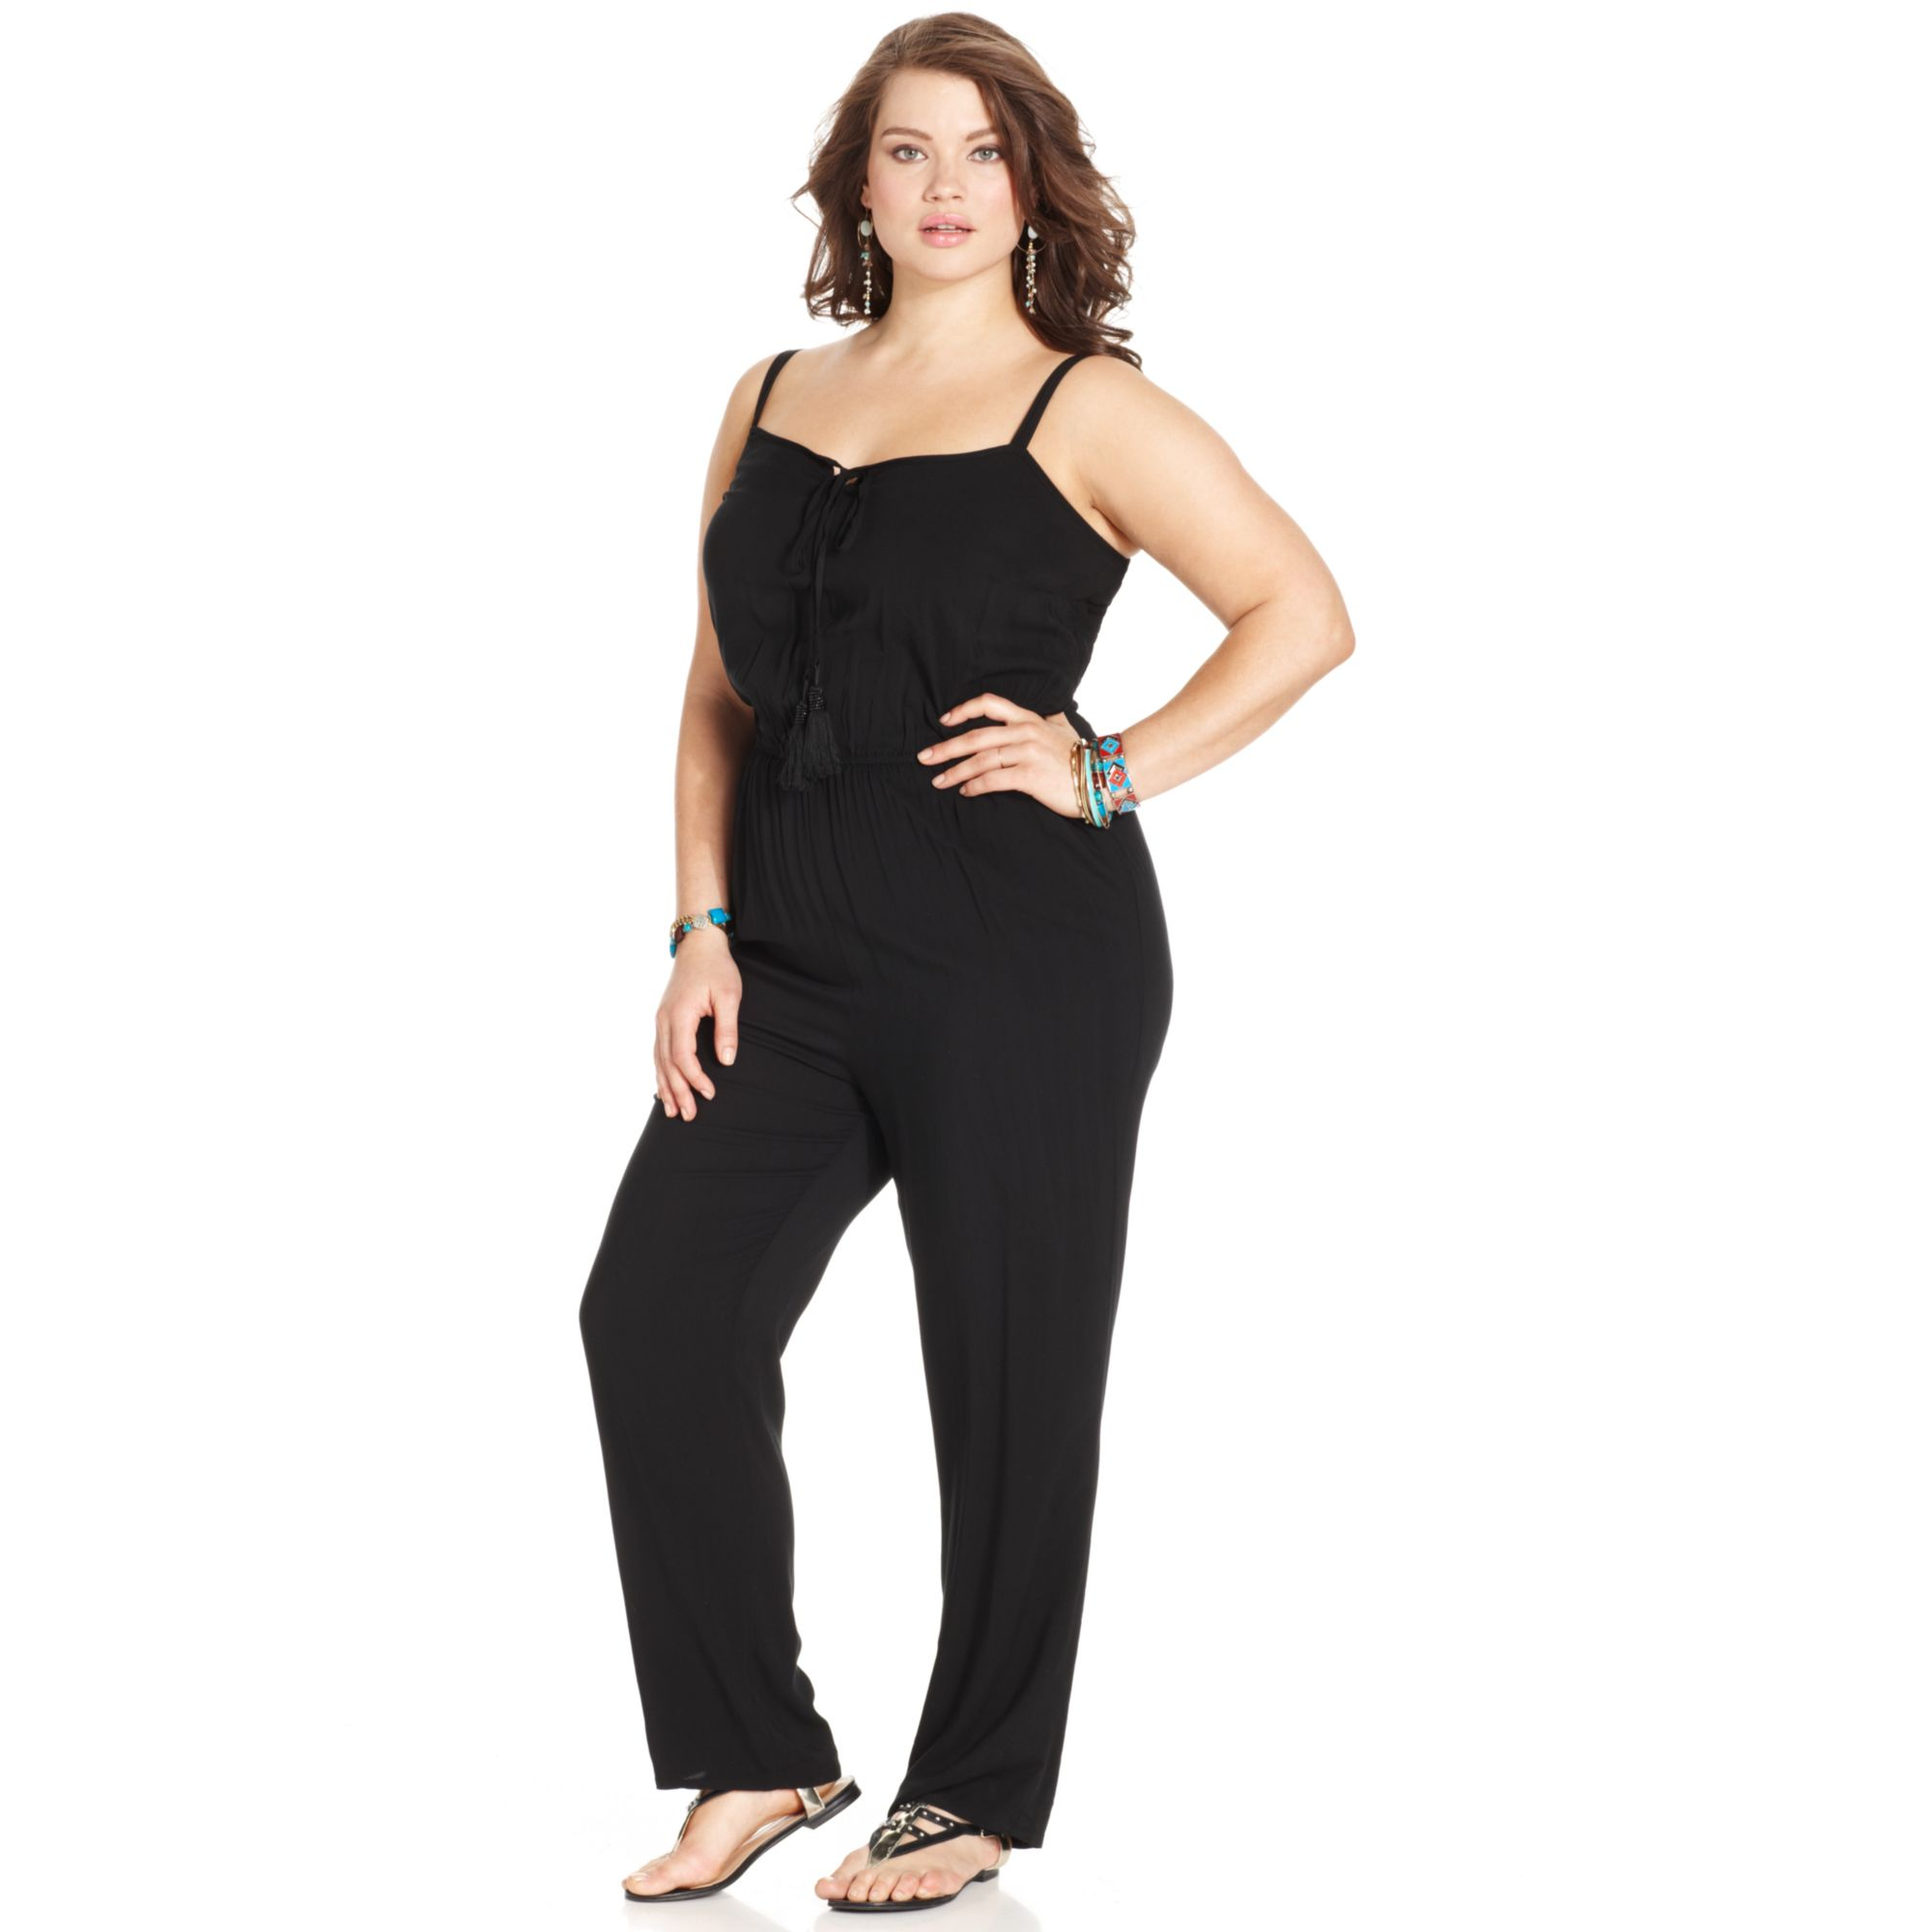 Plus Size & Curve. Sale Rompers and Jumpsuits Sale Matching Sets Sale Activewear Sale Lingerie Sale Accessories You Always Ruin You Jumpsuit - Black/Ivory. $ USD. QUICK VIEW. She's A Baddie Romper - Khaki. $ USD. NEW. NEW.